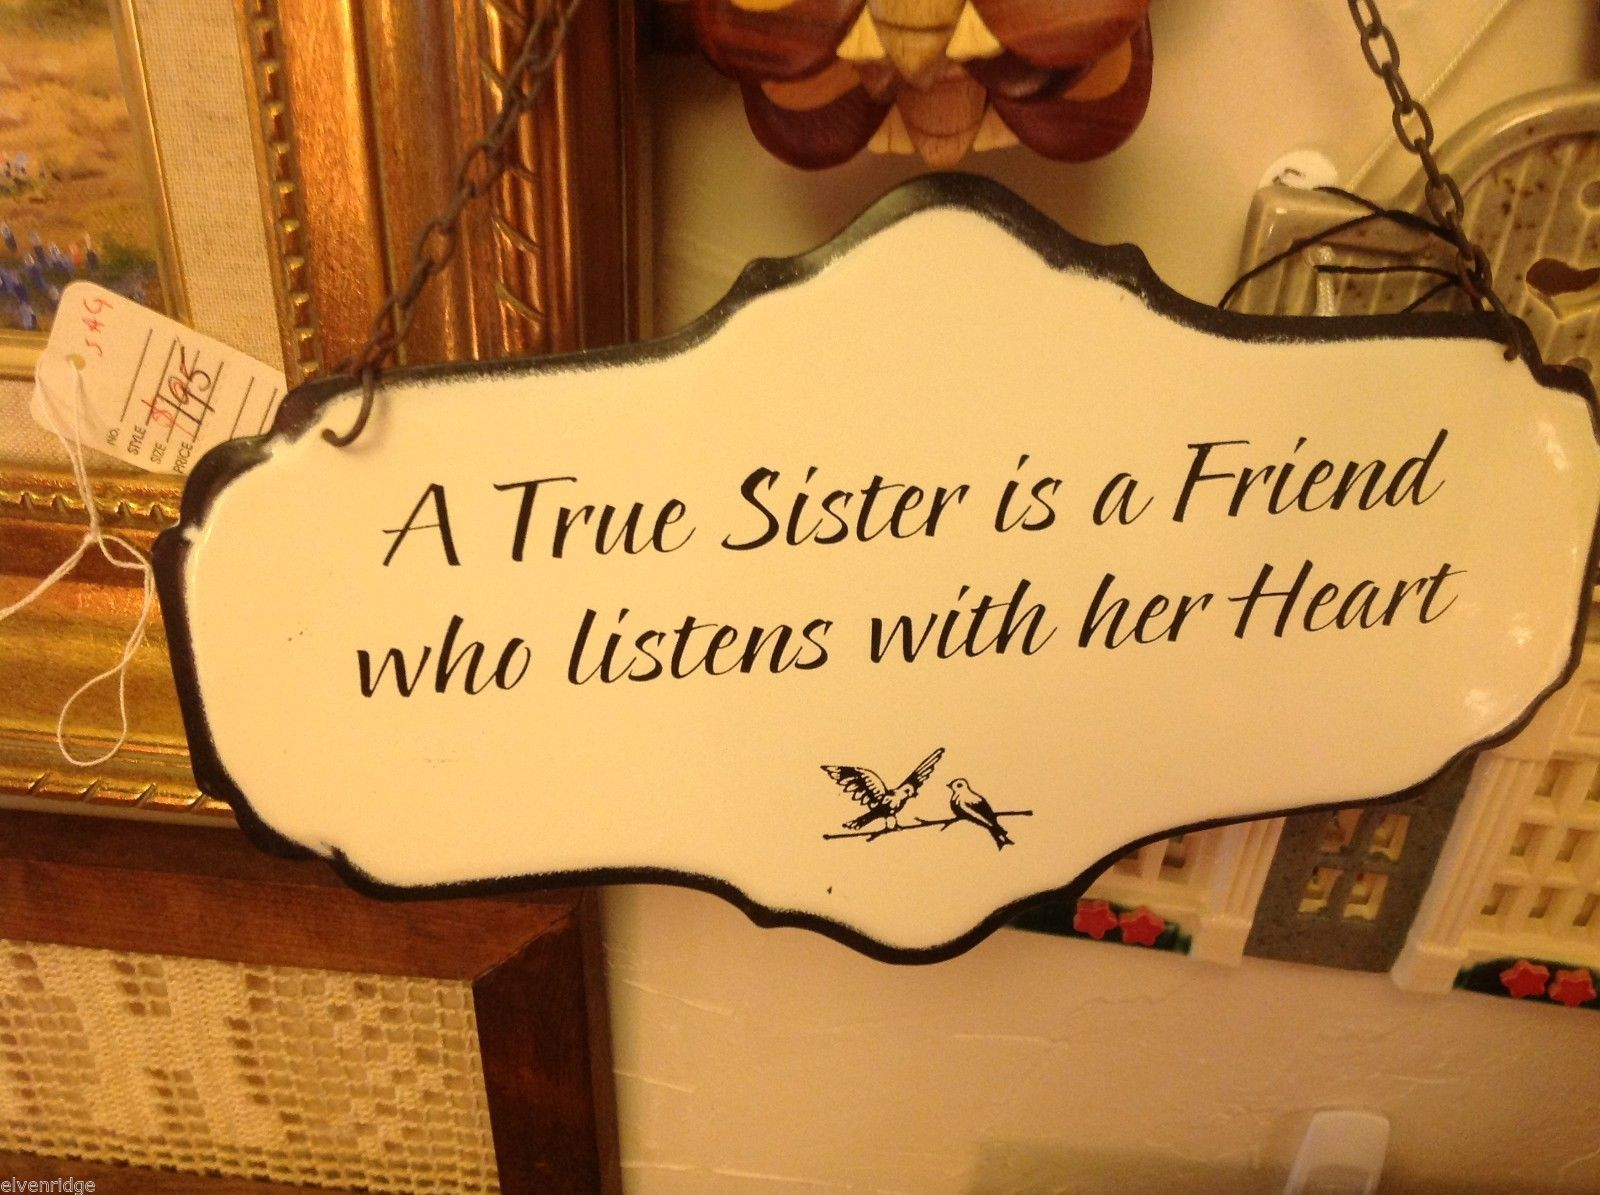 Enameled Sign A true sister is a friend who listens with her heart